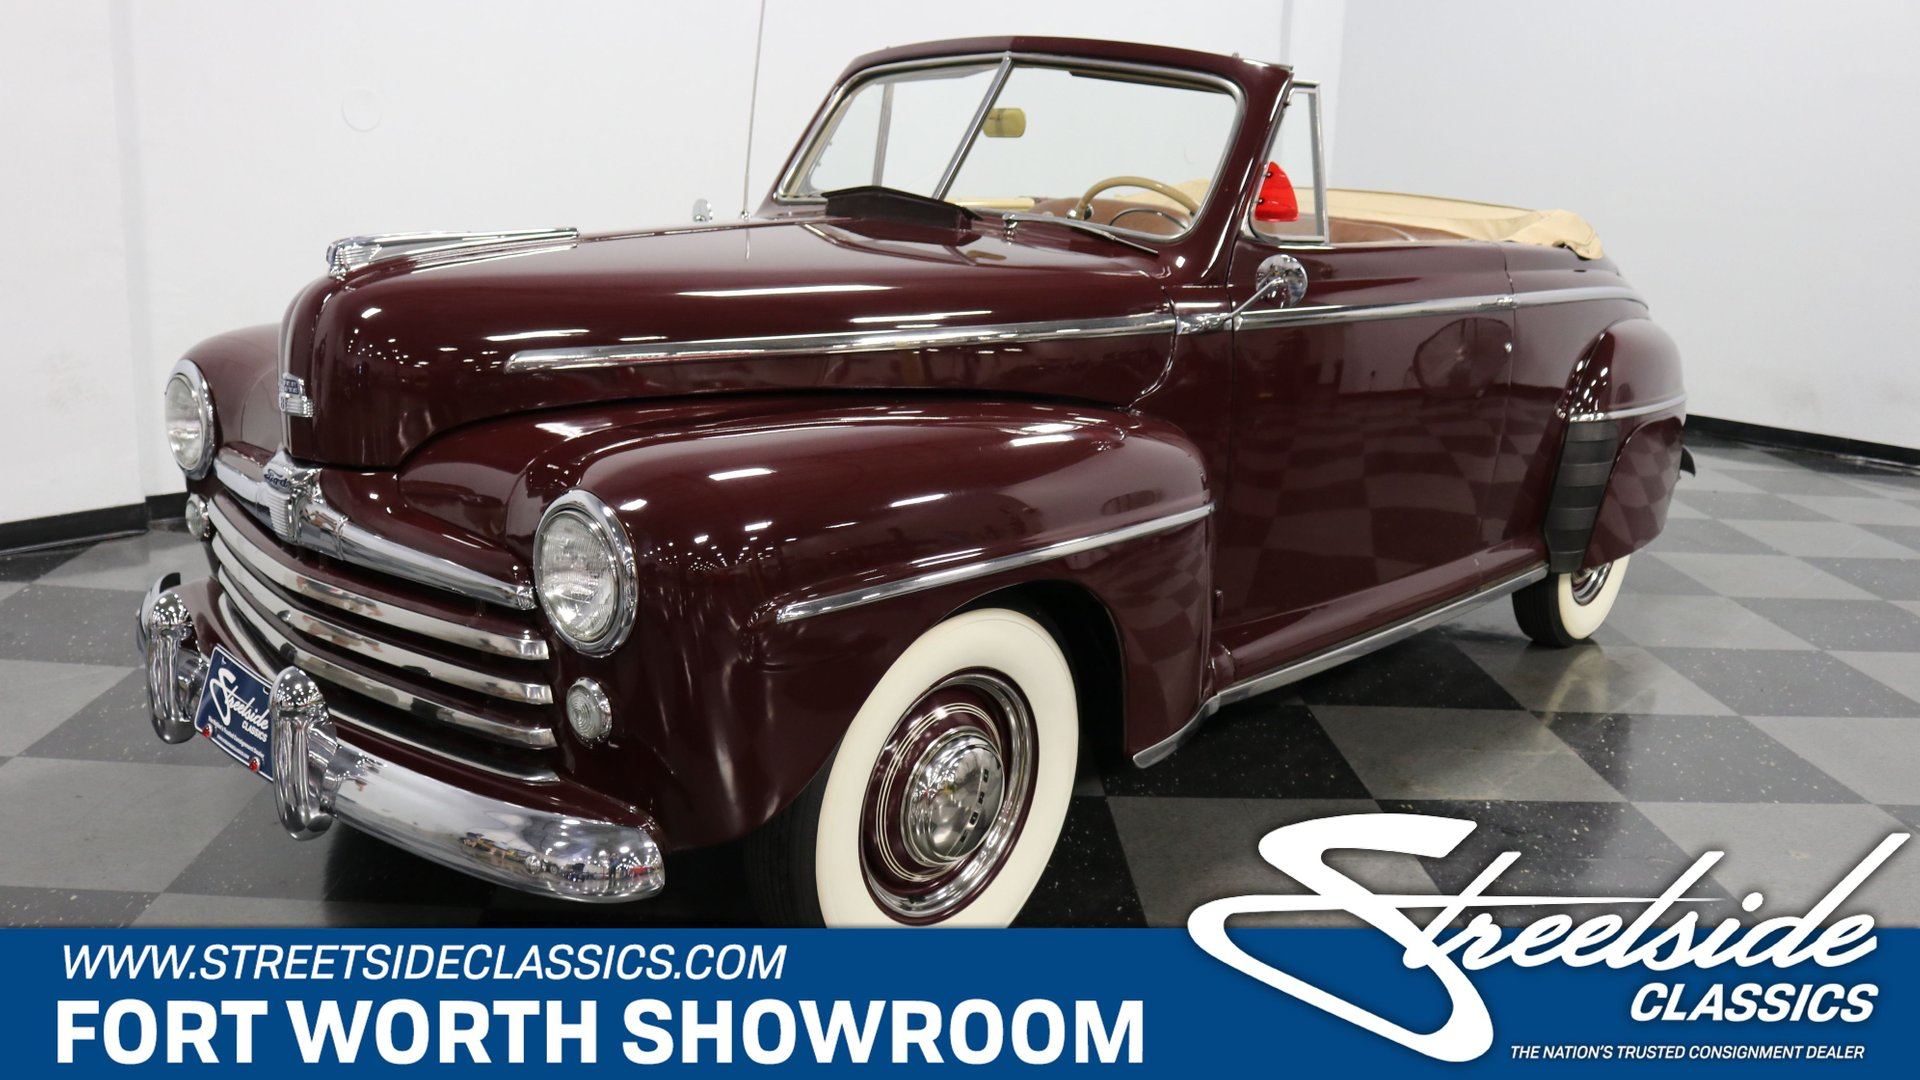 1947 Ford Super Deluxe Classic Cars For Sale Streetside Classics The Nation S 1 Consignment Dealer